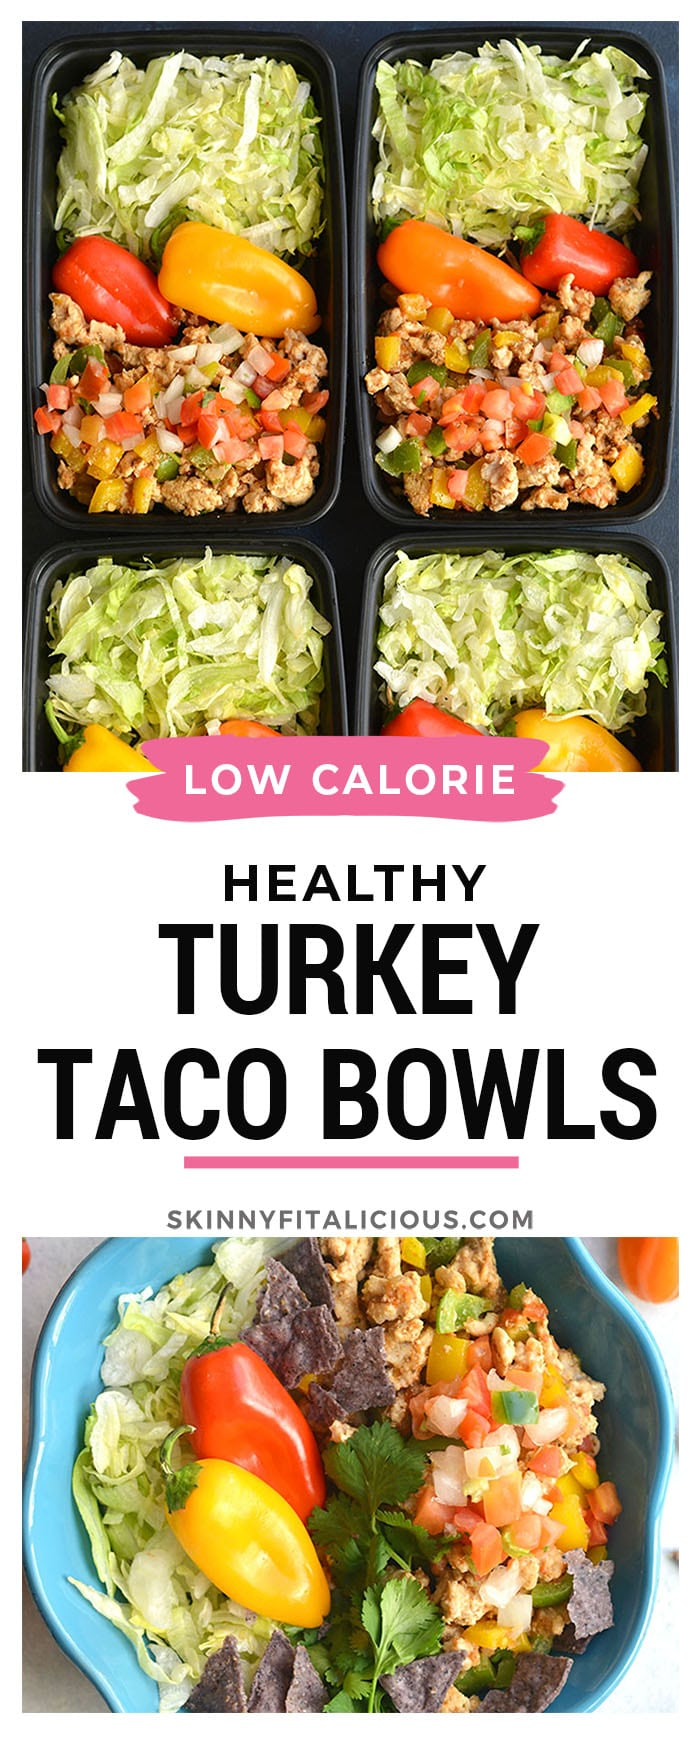 Meal Prep Turkey TacoBowls are a healthier version of takeout that's lower in calories and big on flavor! Made with homemade seasoning for an EASY and filling veggie-protein-packed lunch or dinner.